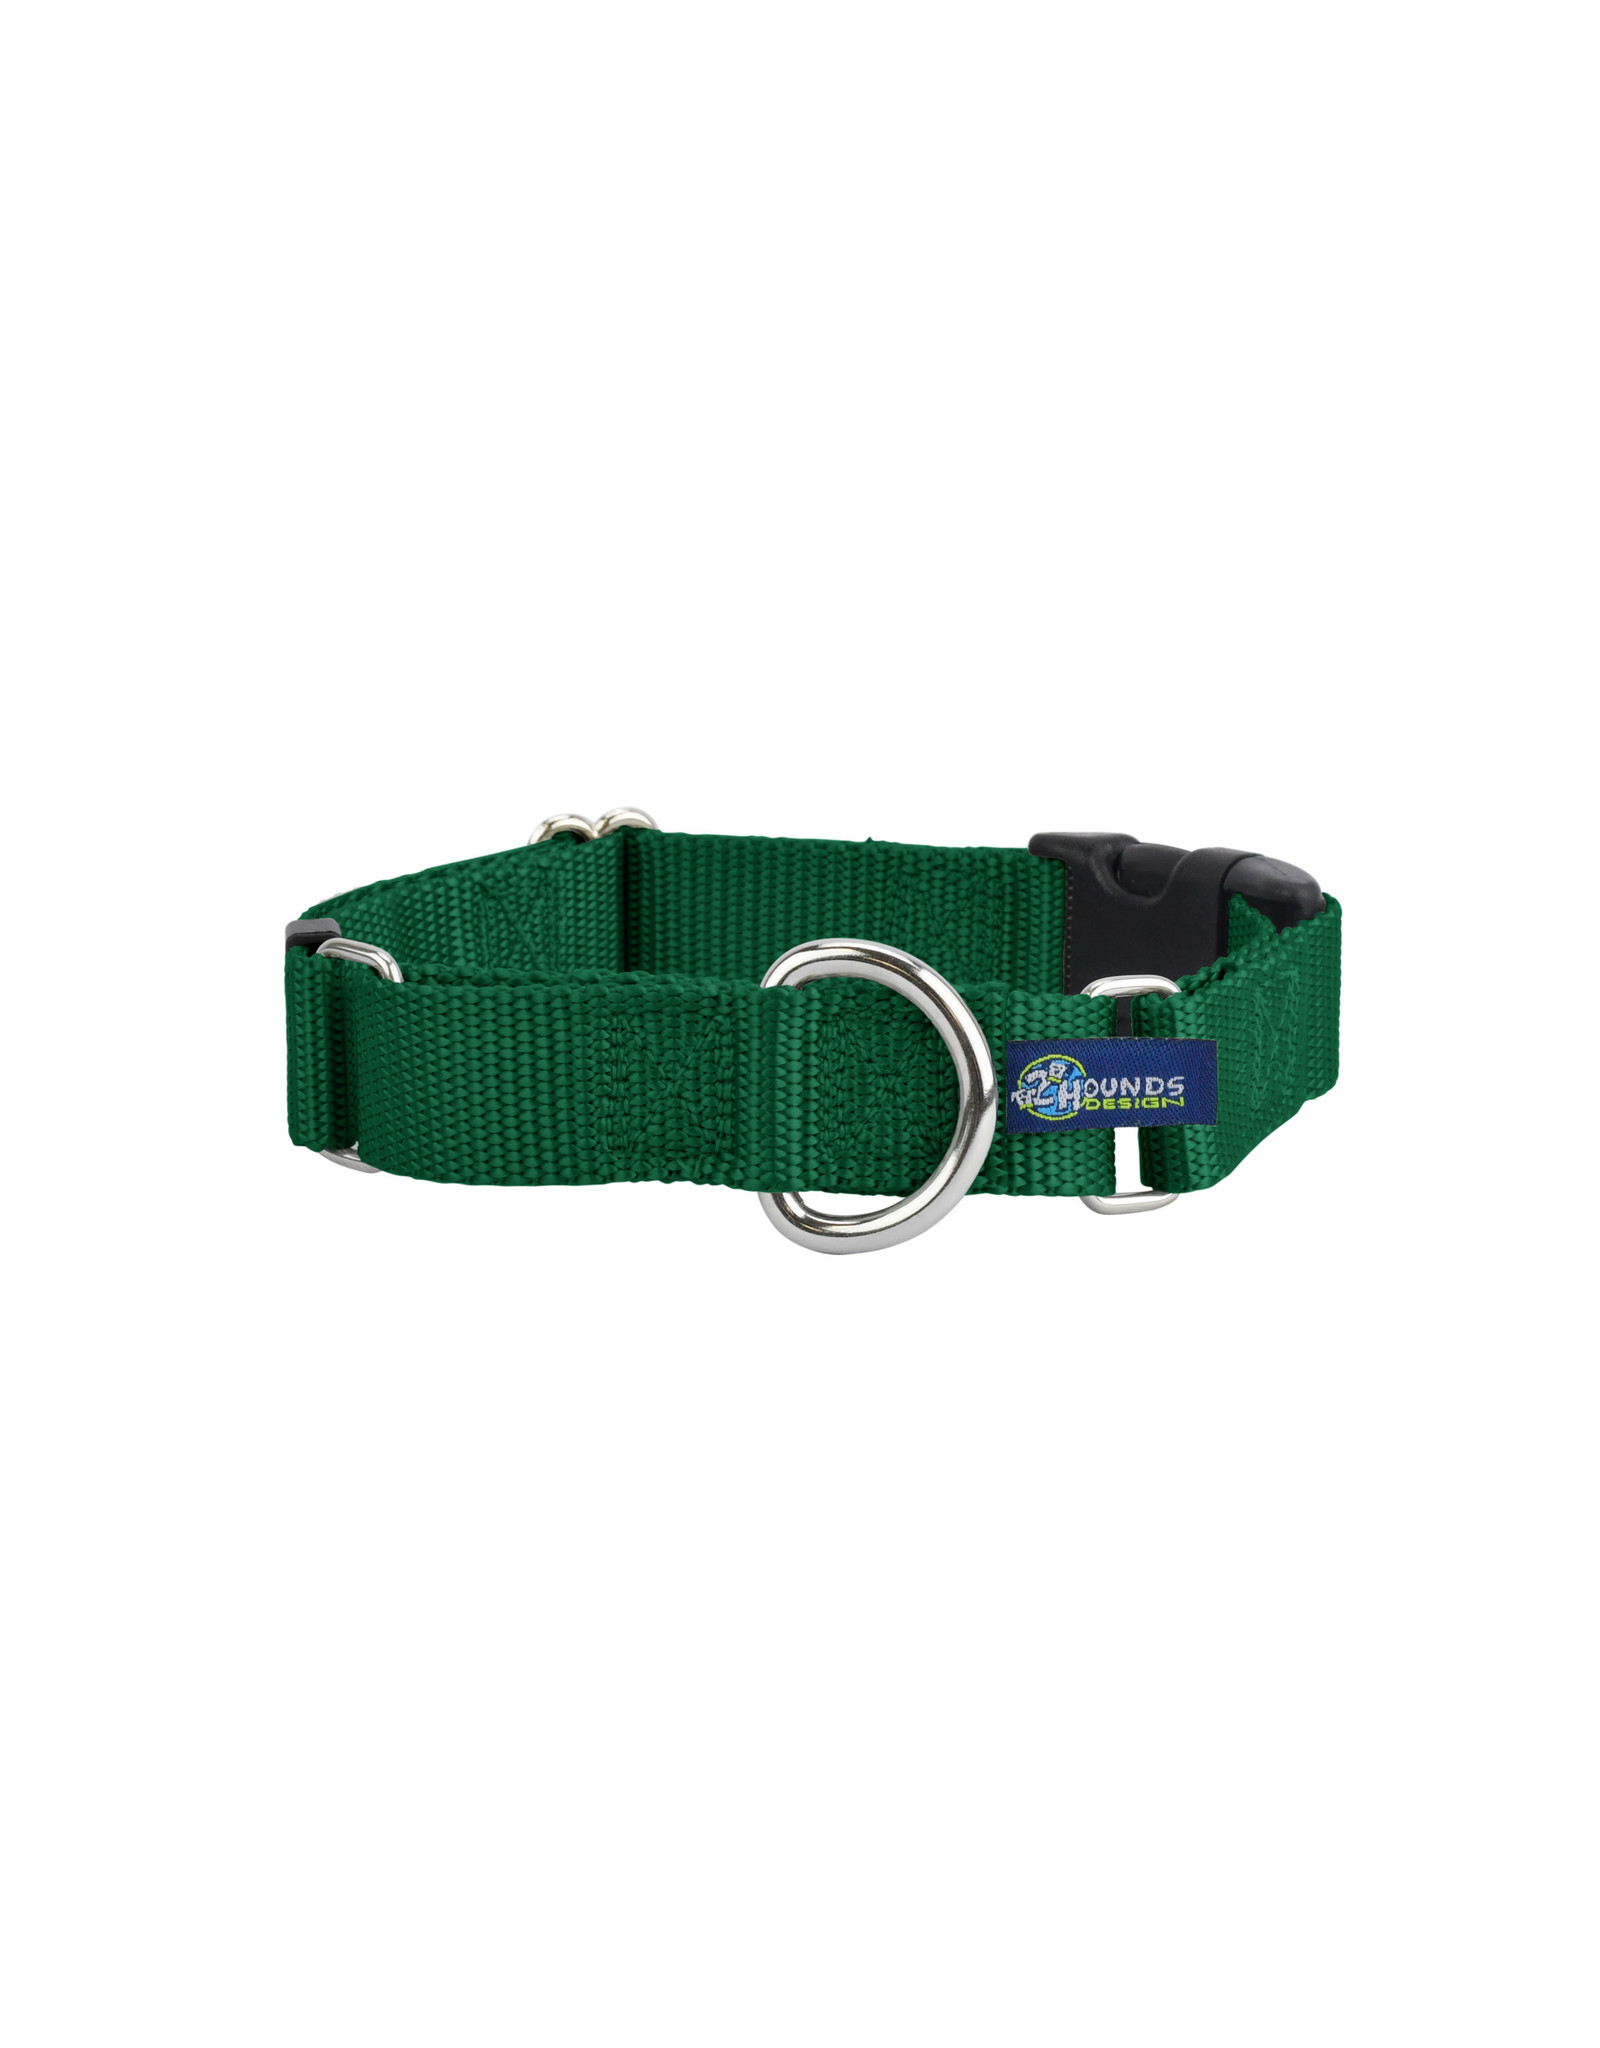 "2 Hounds Design Martingale w/ buckle: Kelly Green, 1"" M"